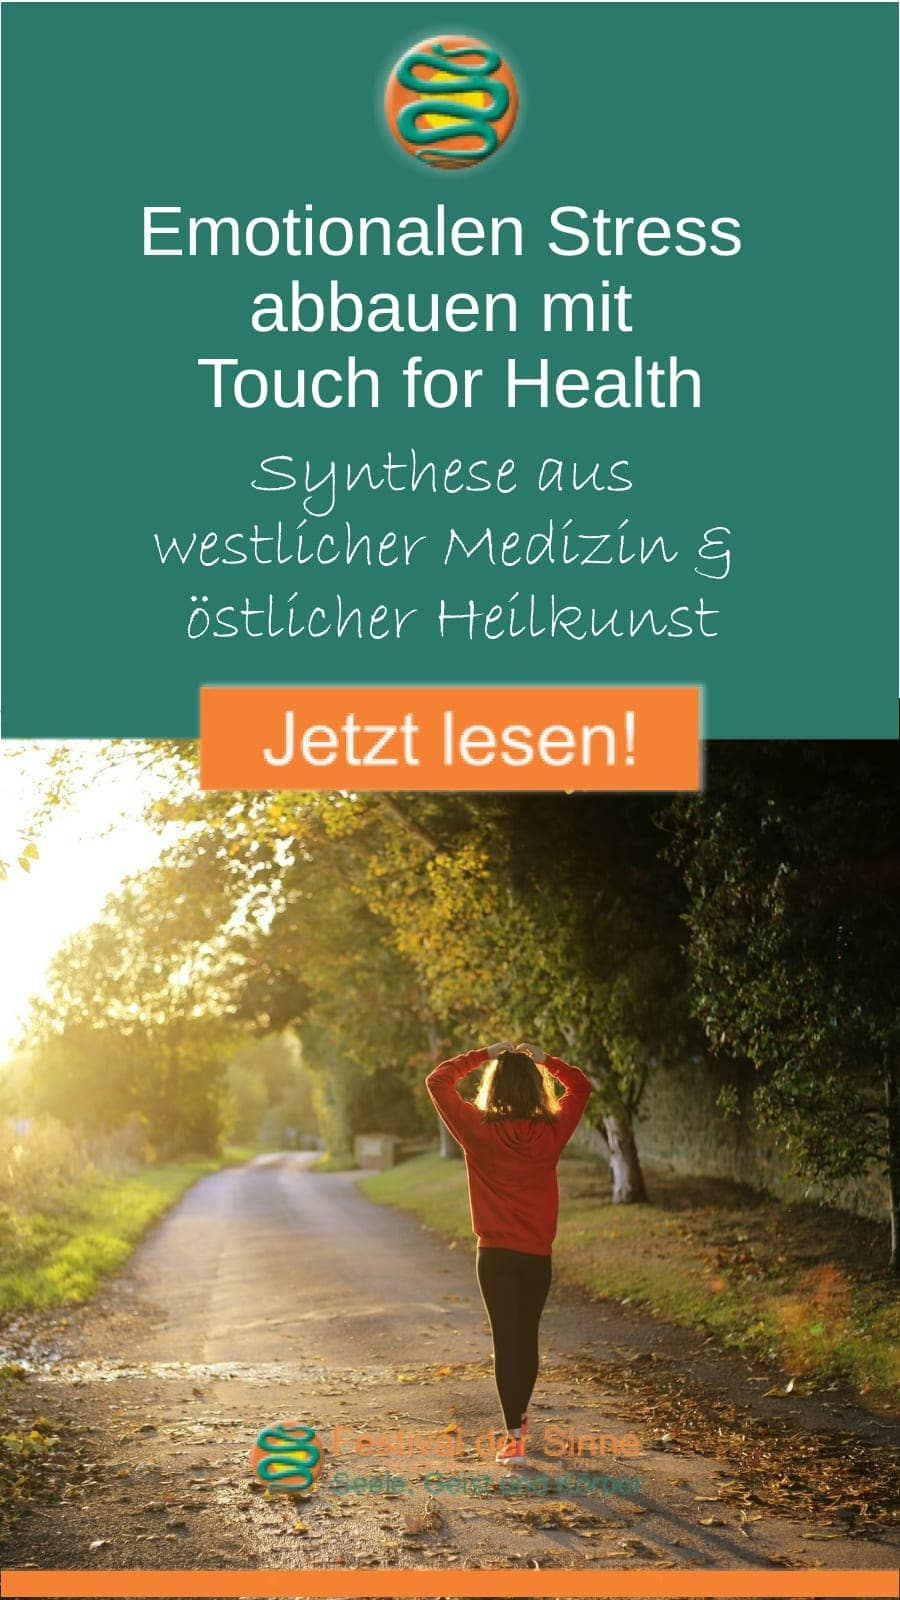 #Emotionalen #Stress #Abbauen mit #Touch for #Health